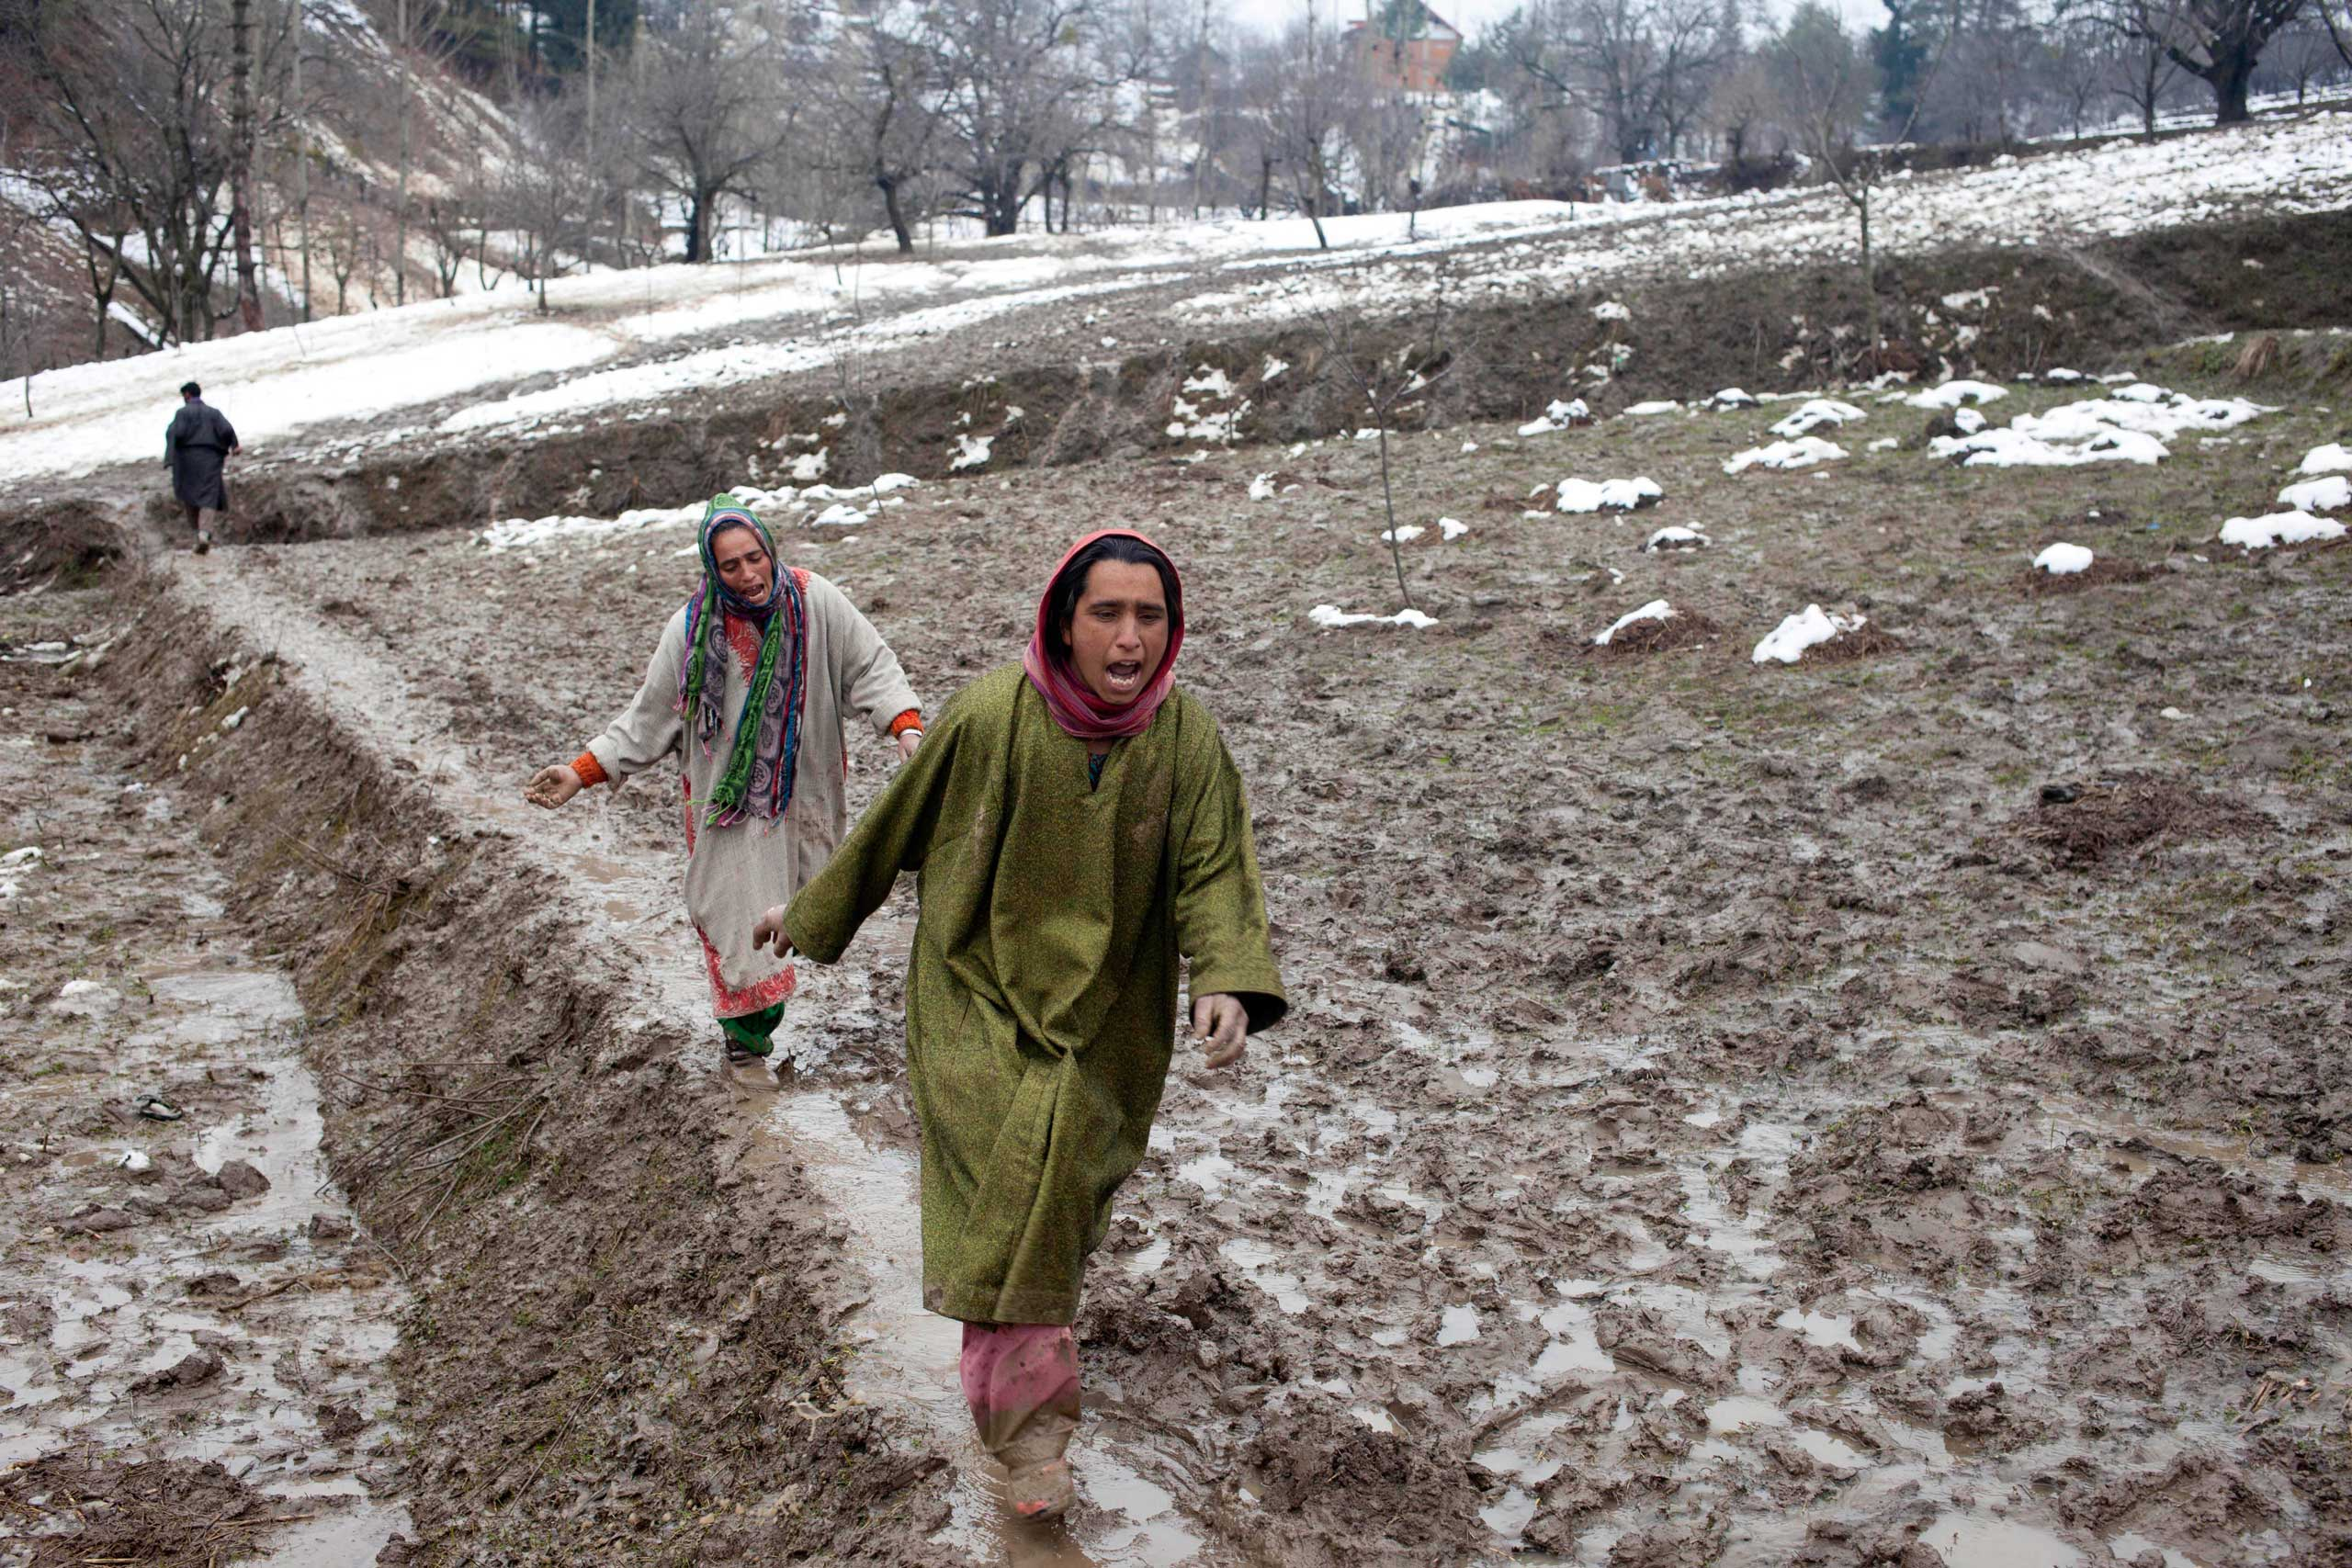 Kashmiri women wail and rush towards  the body of a relative, victim of a landslide, in the village of Laden on March 30, 2015.